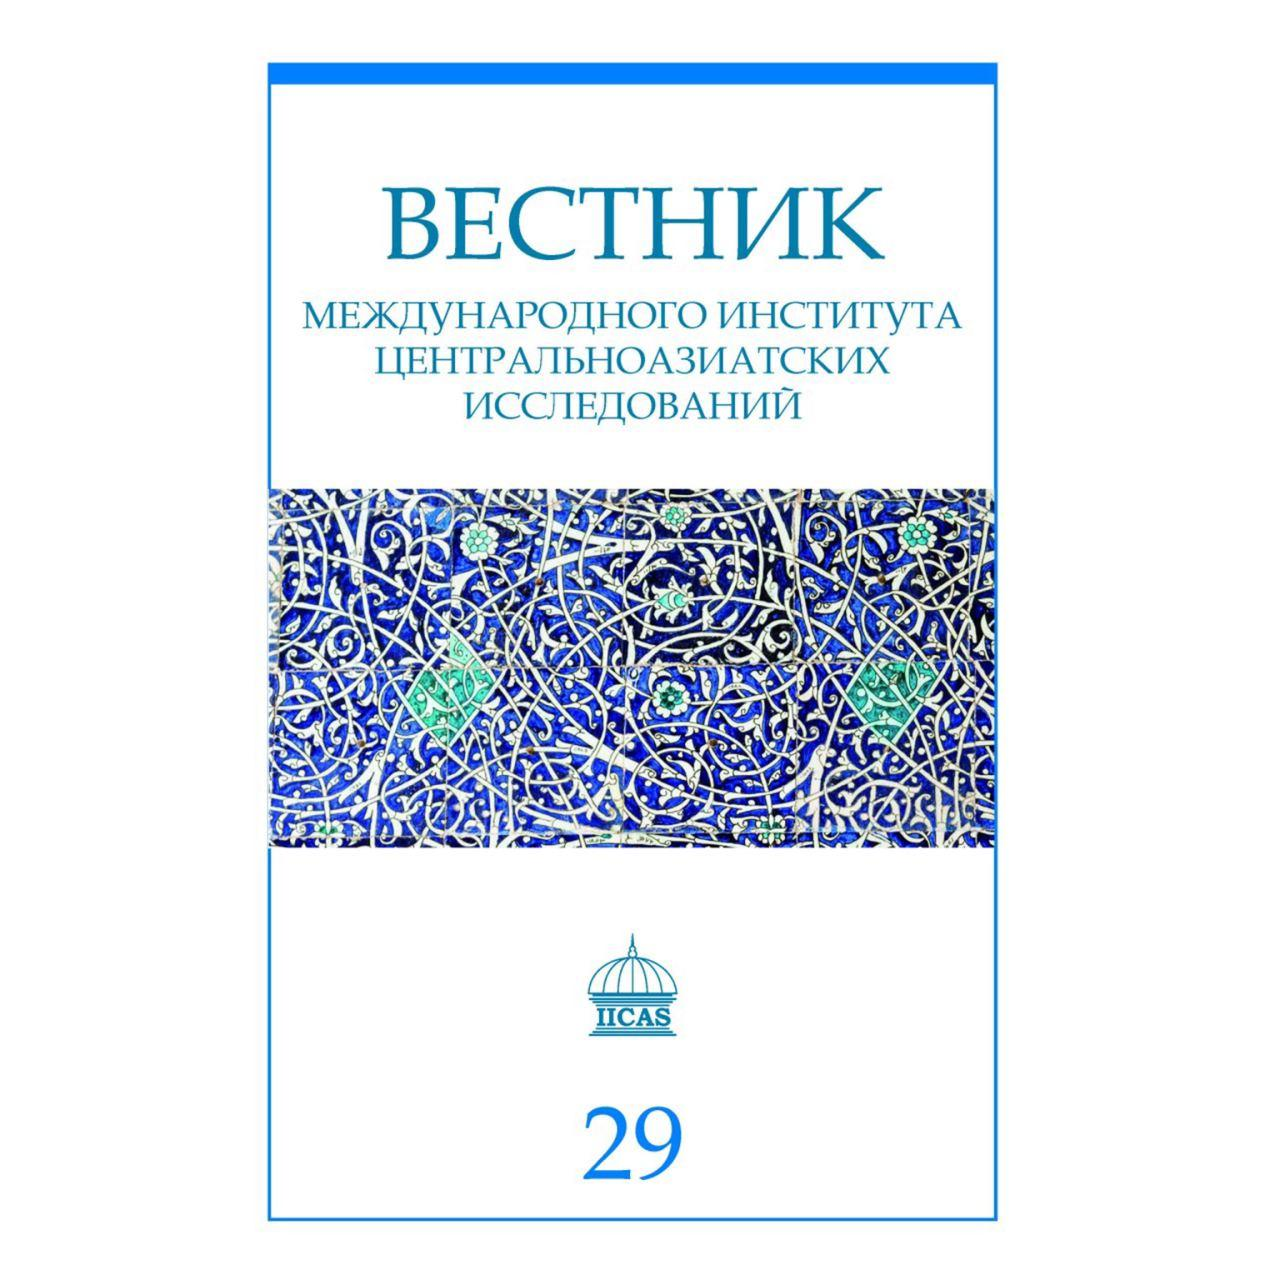 The International Institute for Central Asian Studies announces the release of the 29th issue of the